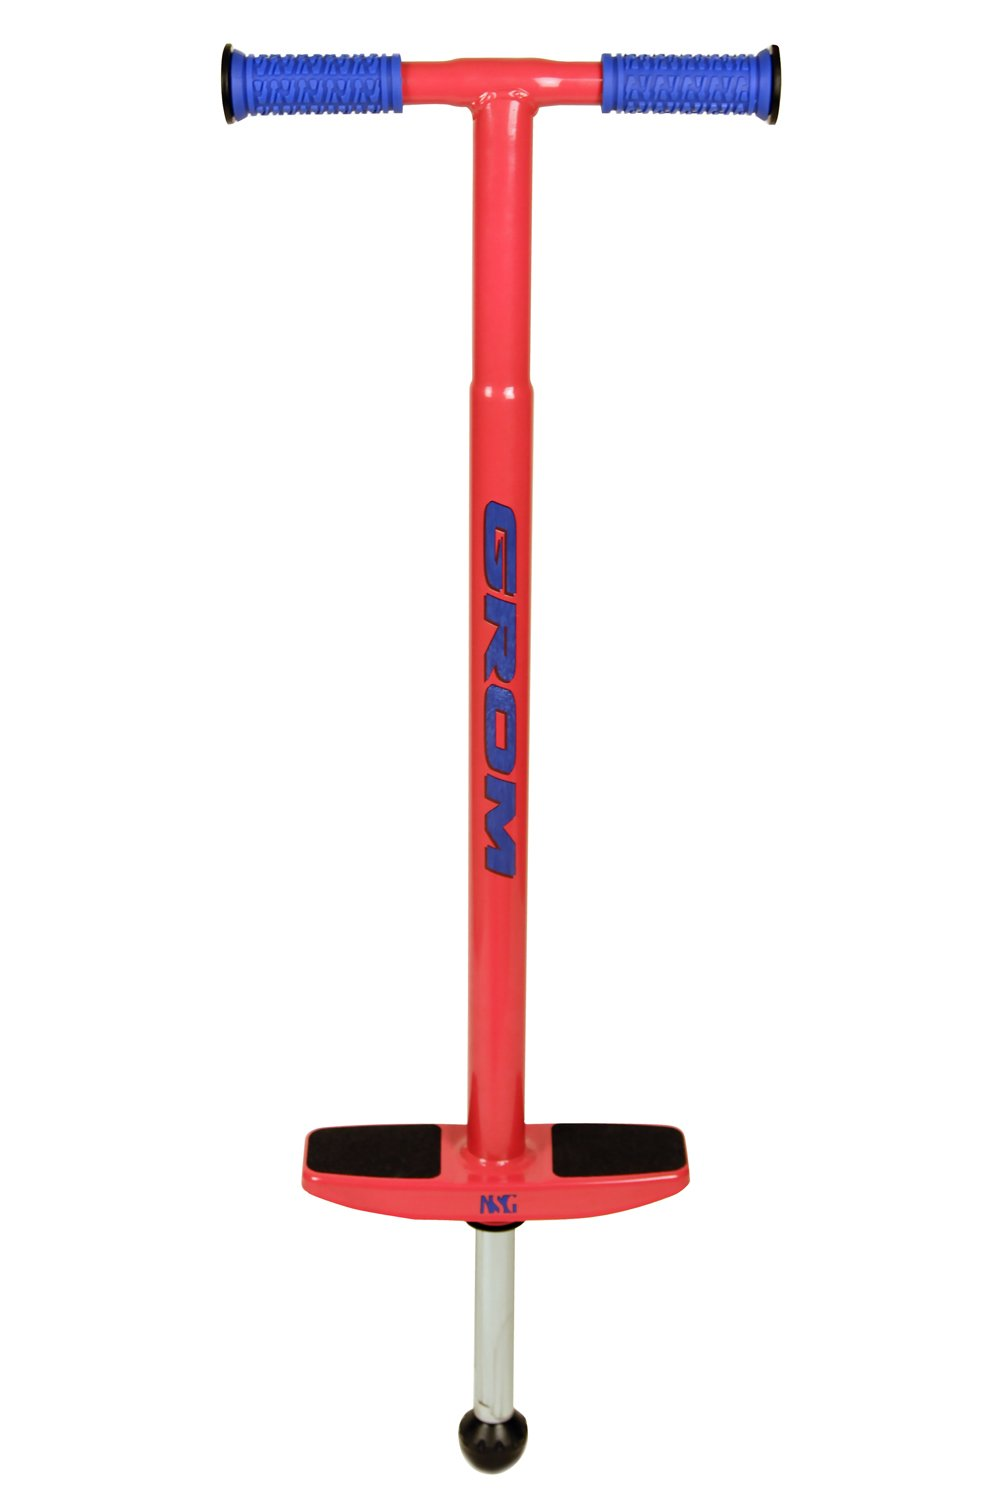 NSG Grom Pogo Stick - 5 to 9 Year Olds, 40-90 Pounds, Red by NSG